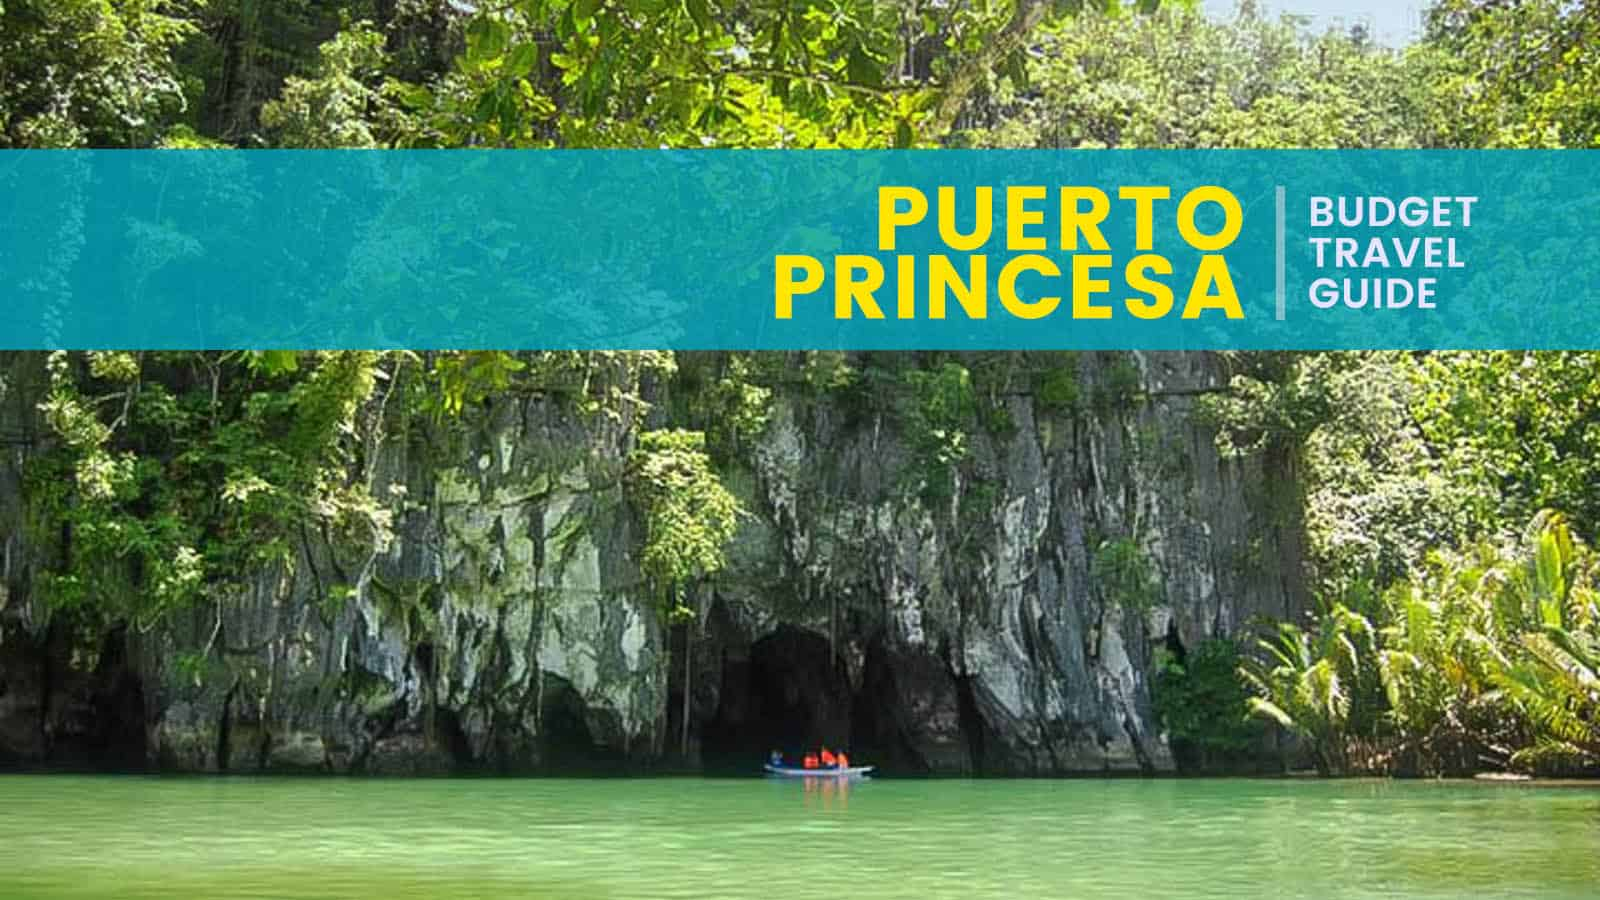 PUERTO PRINCESA, PALAWAN: Budget Travel Guide | The Poor Traveler